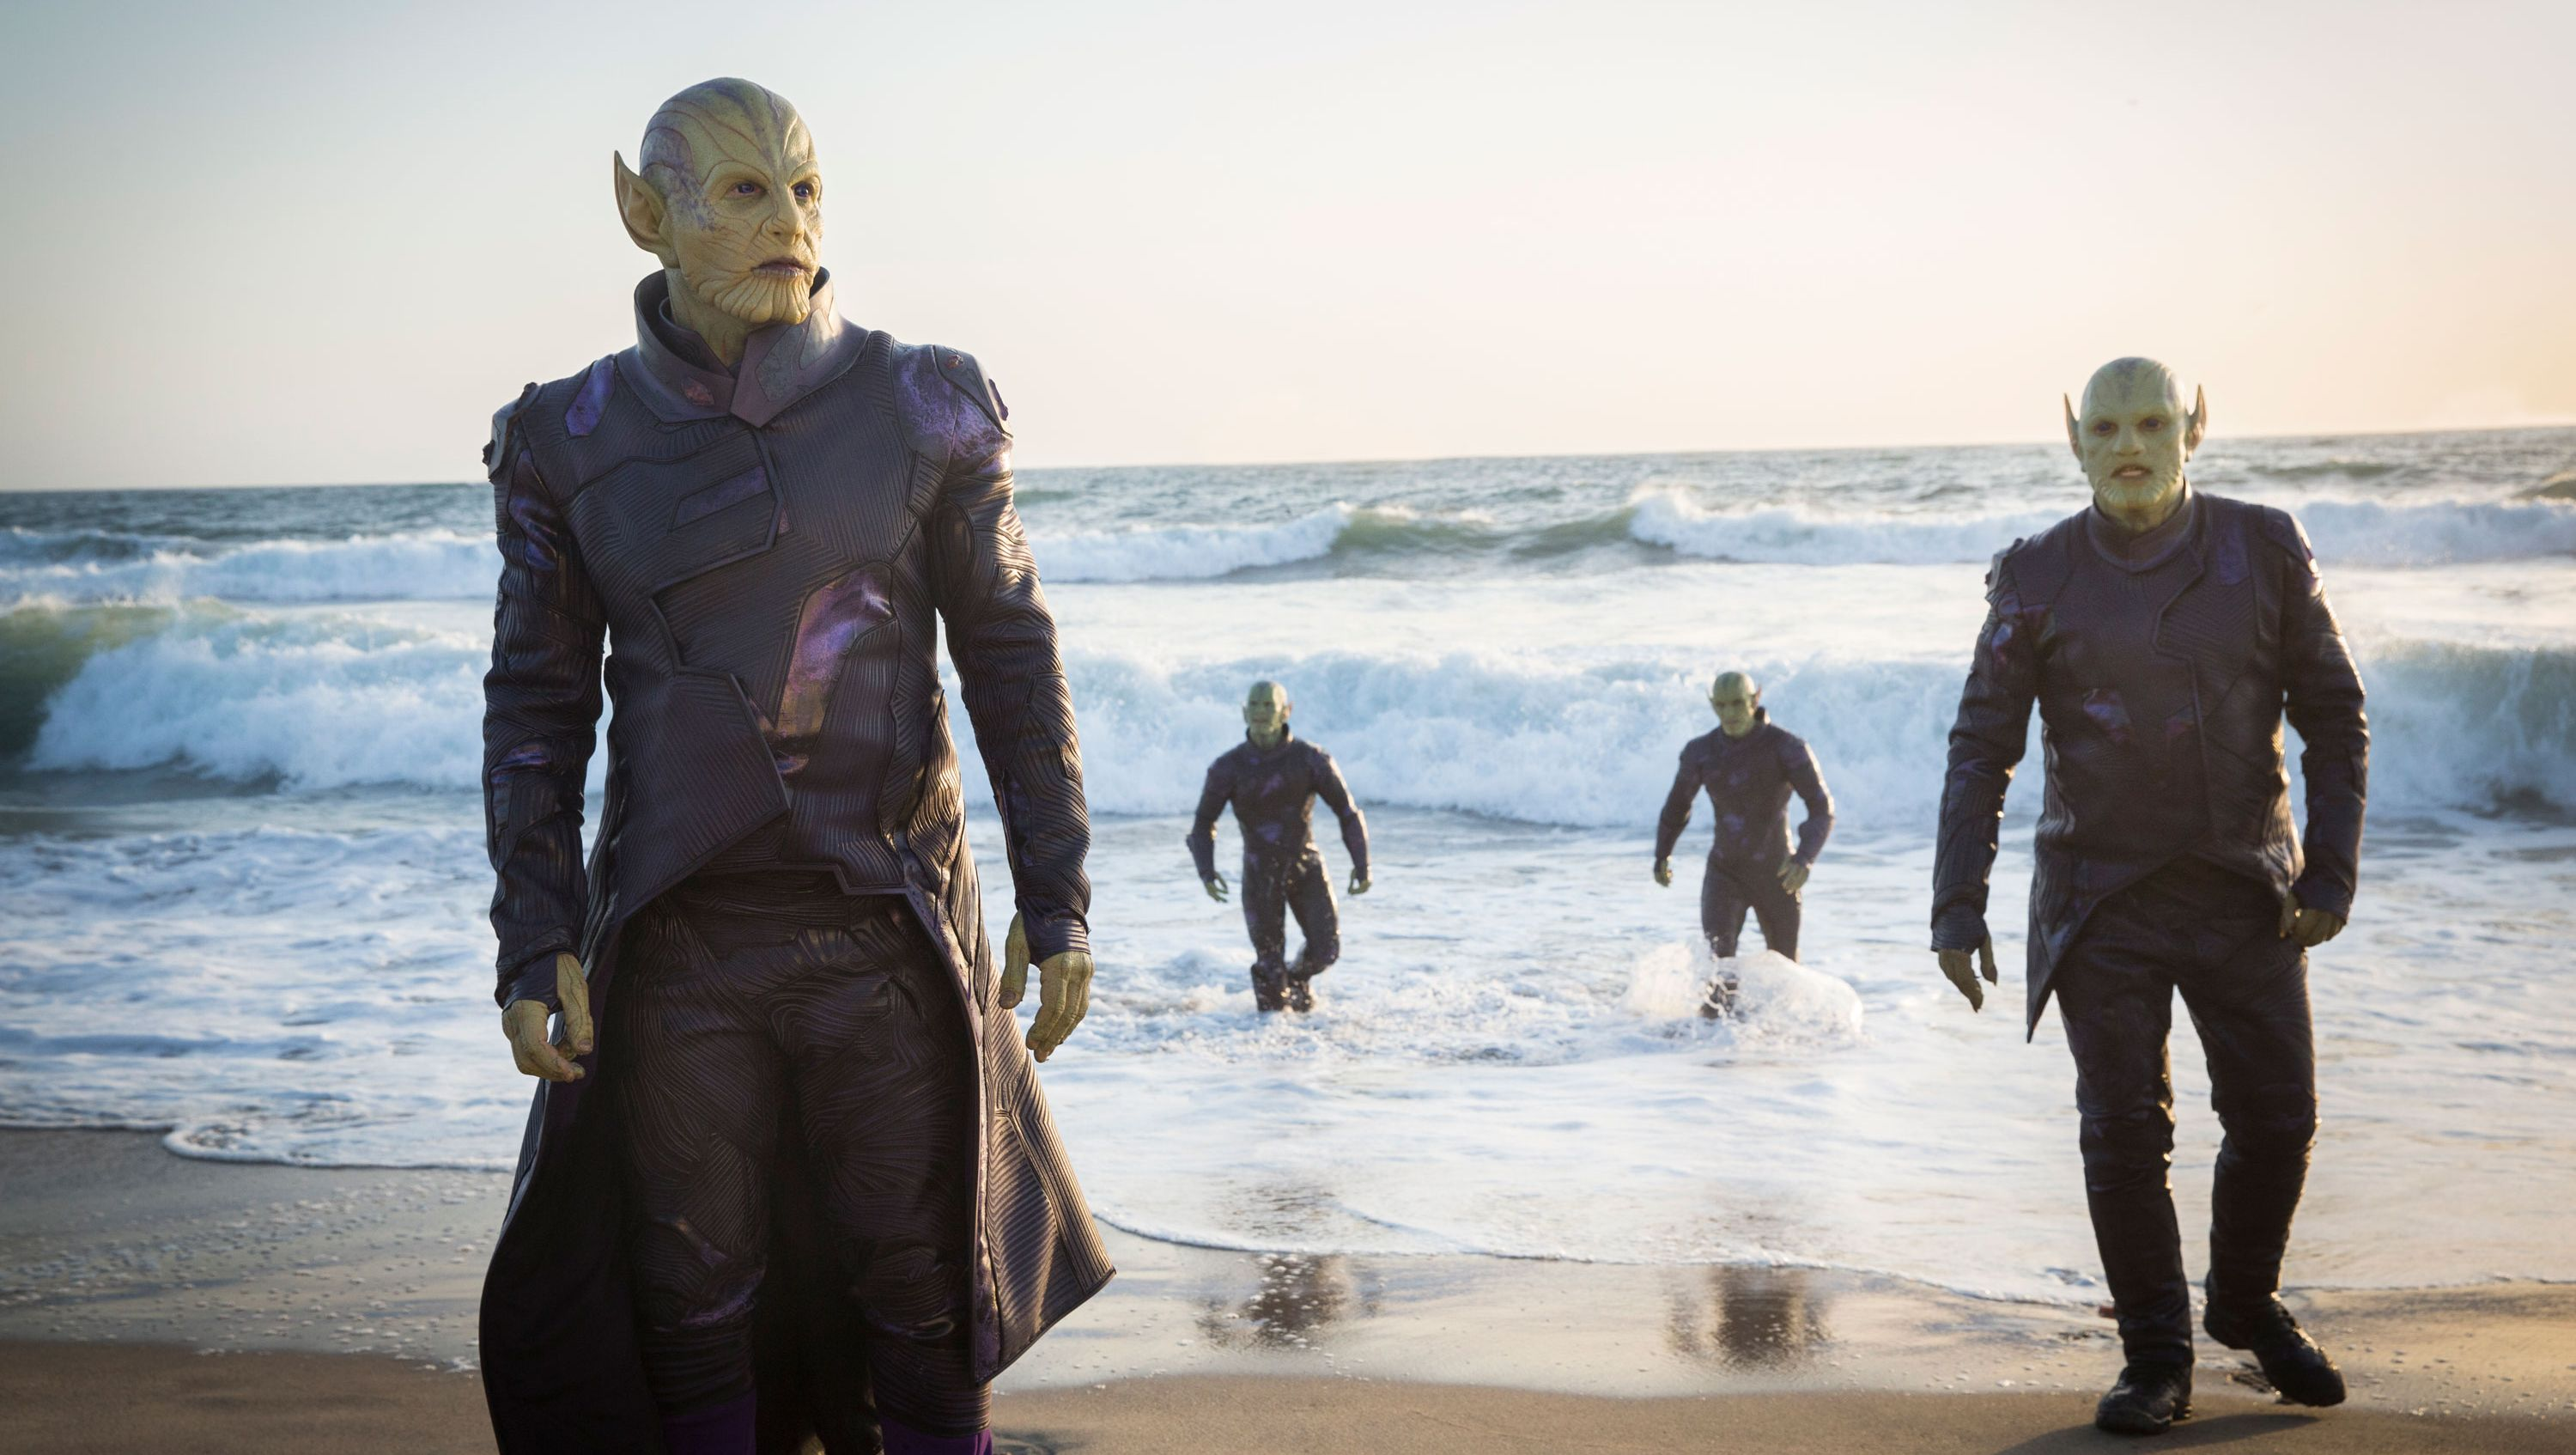 Who are Marvel's Skrulls and what has Captain Marvel got to do with them?